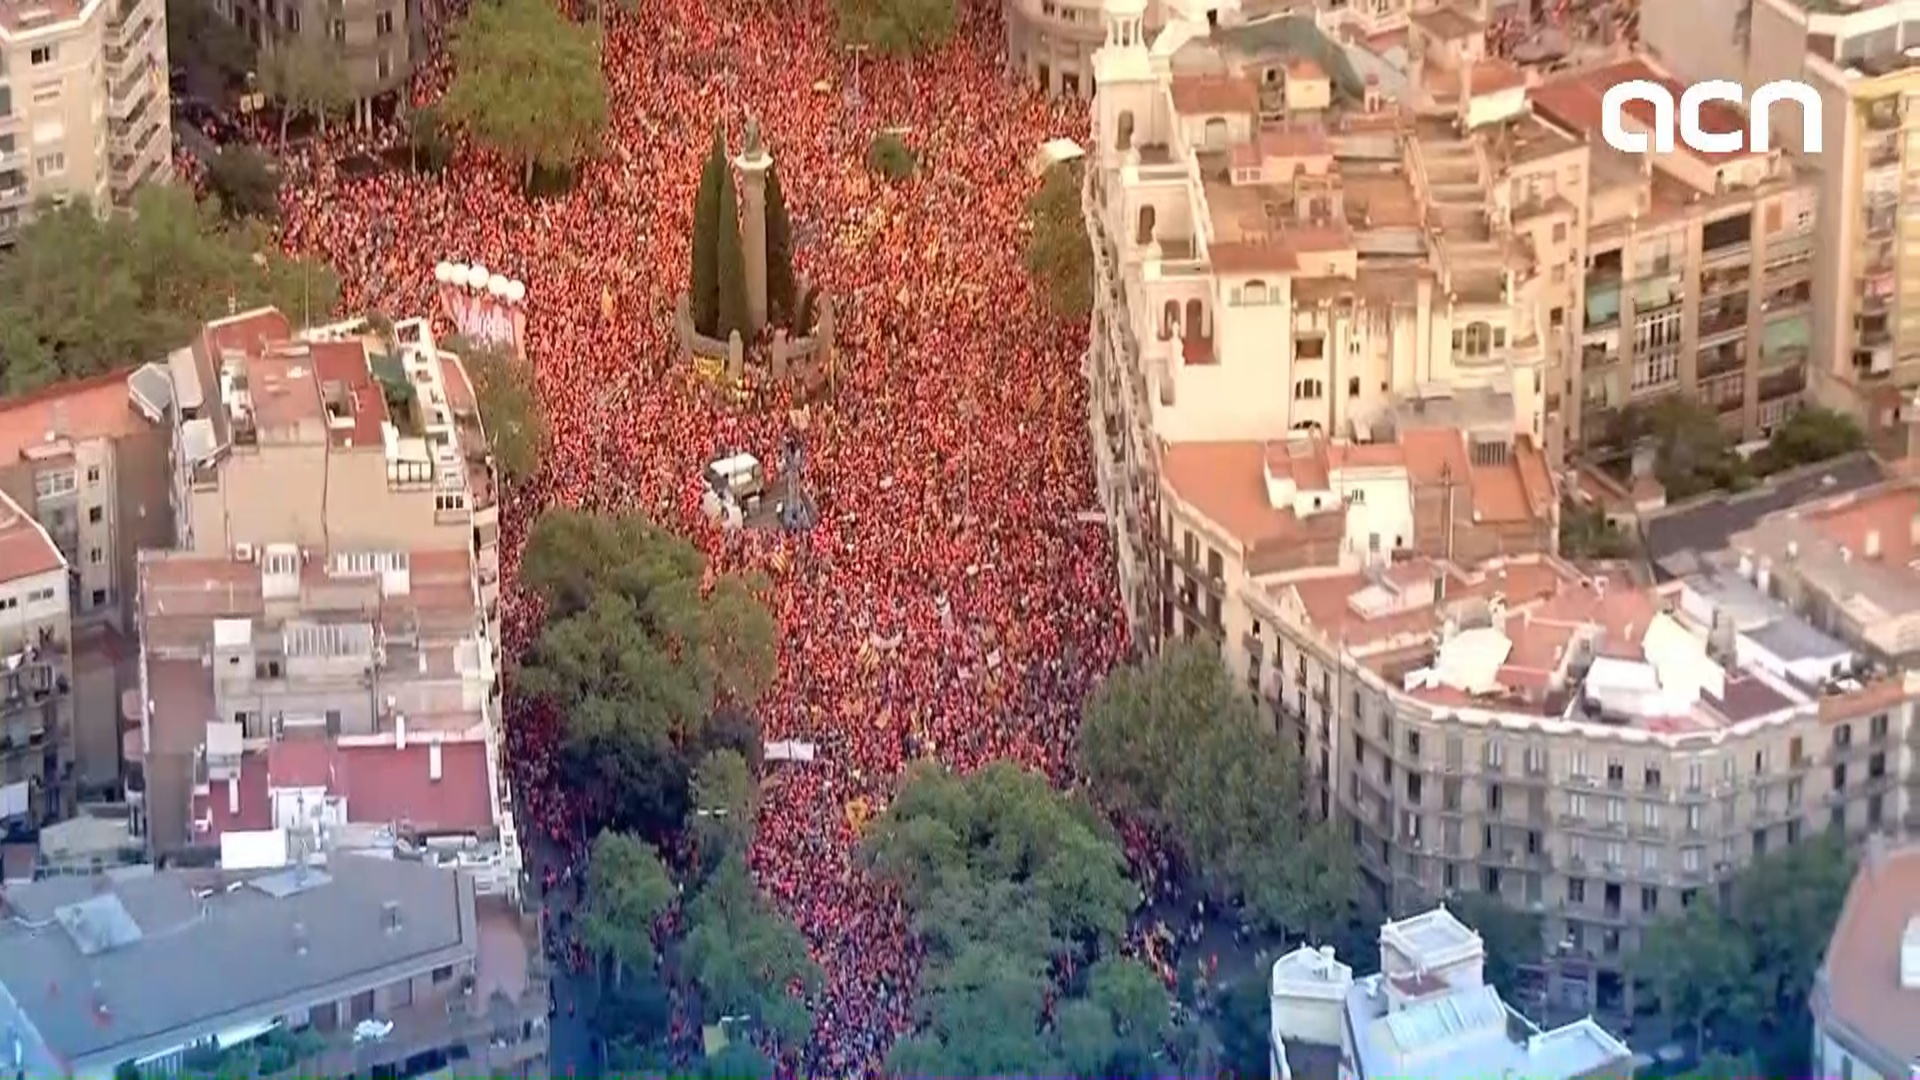 Aerial images of Barcelona's Diagonal Avenue filled with pro-independence protesters